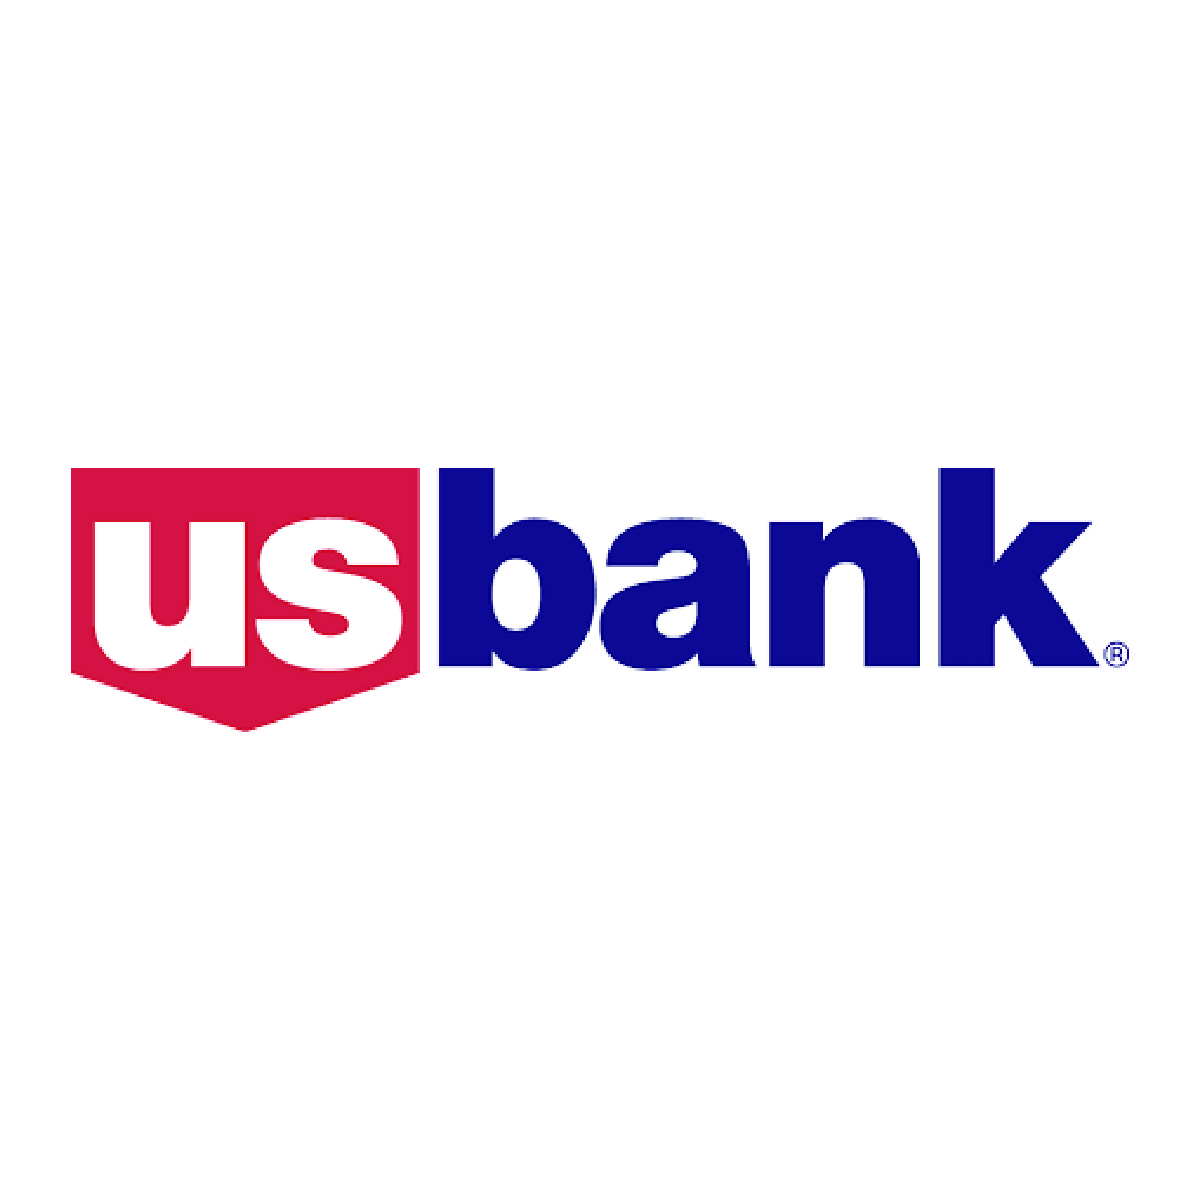 US Bank   600 Demers Ave Grand Forks, ND 58201  701-795-6295